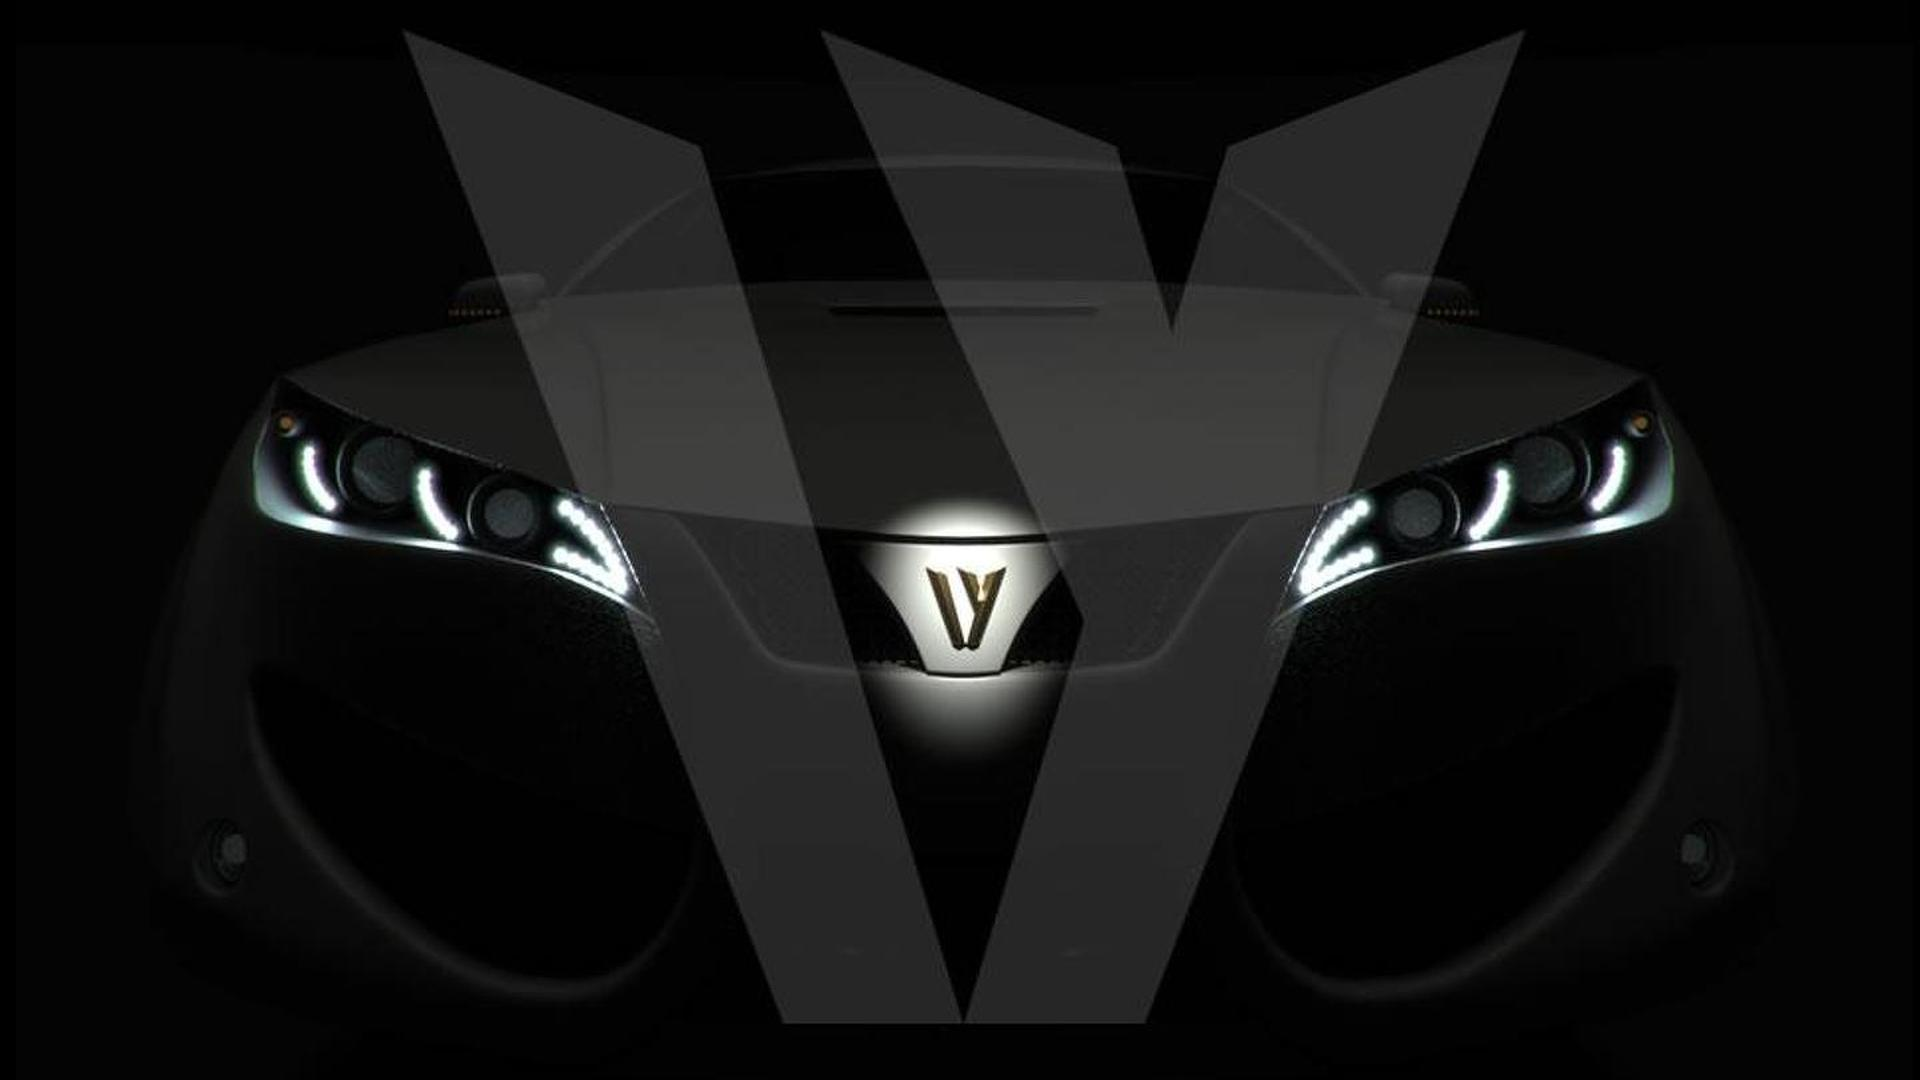 Vygor n.01 teased - Italy's newest sports car